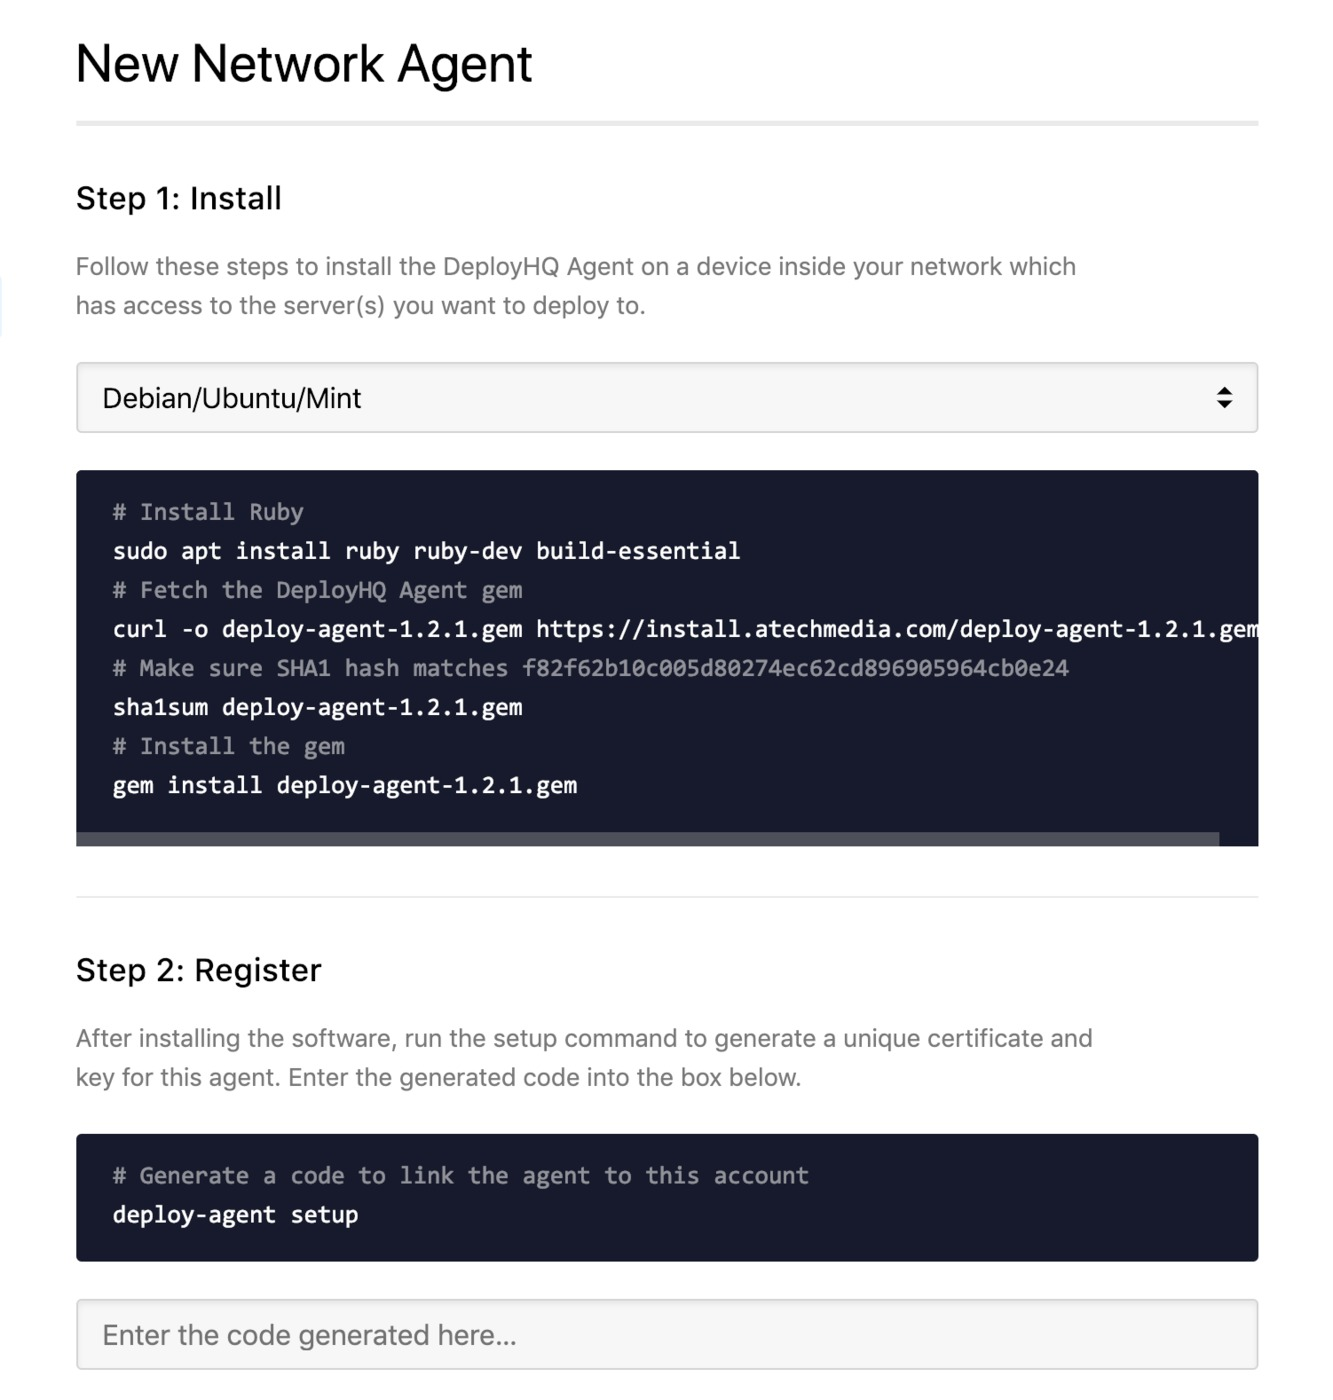 Deploy to servers in private networks using the DeployHQ